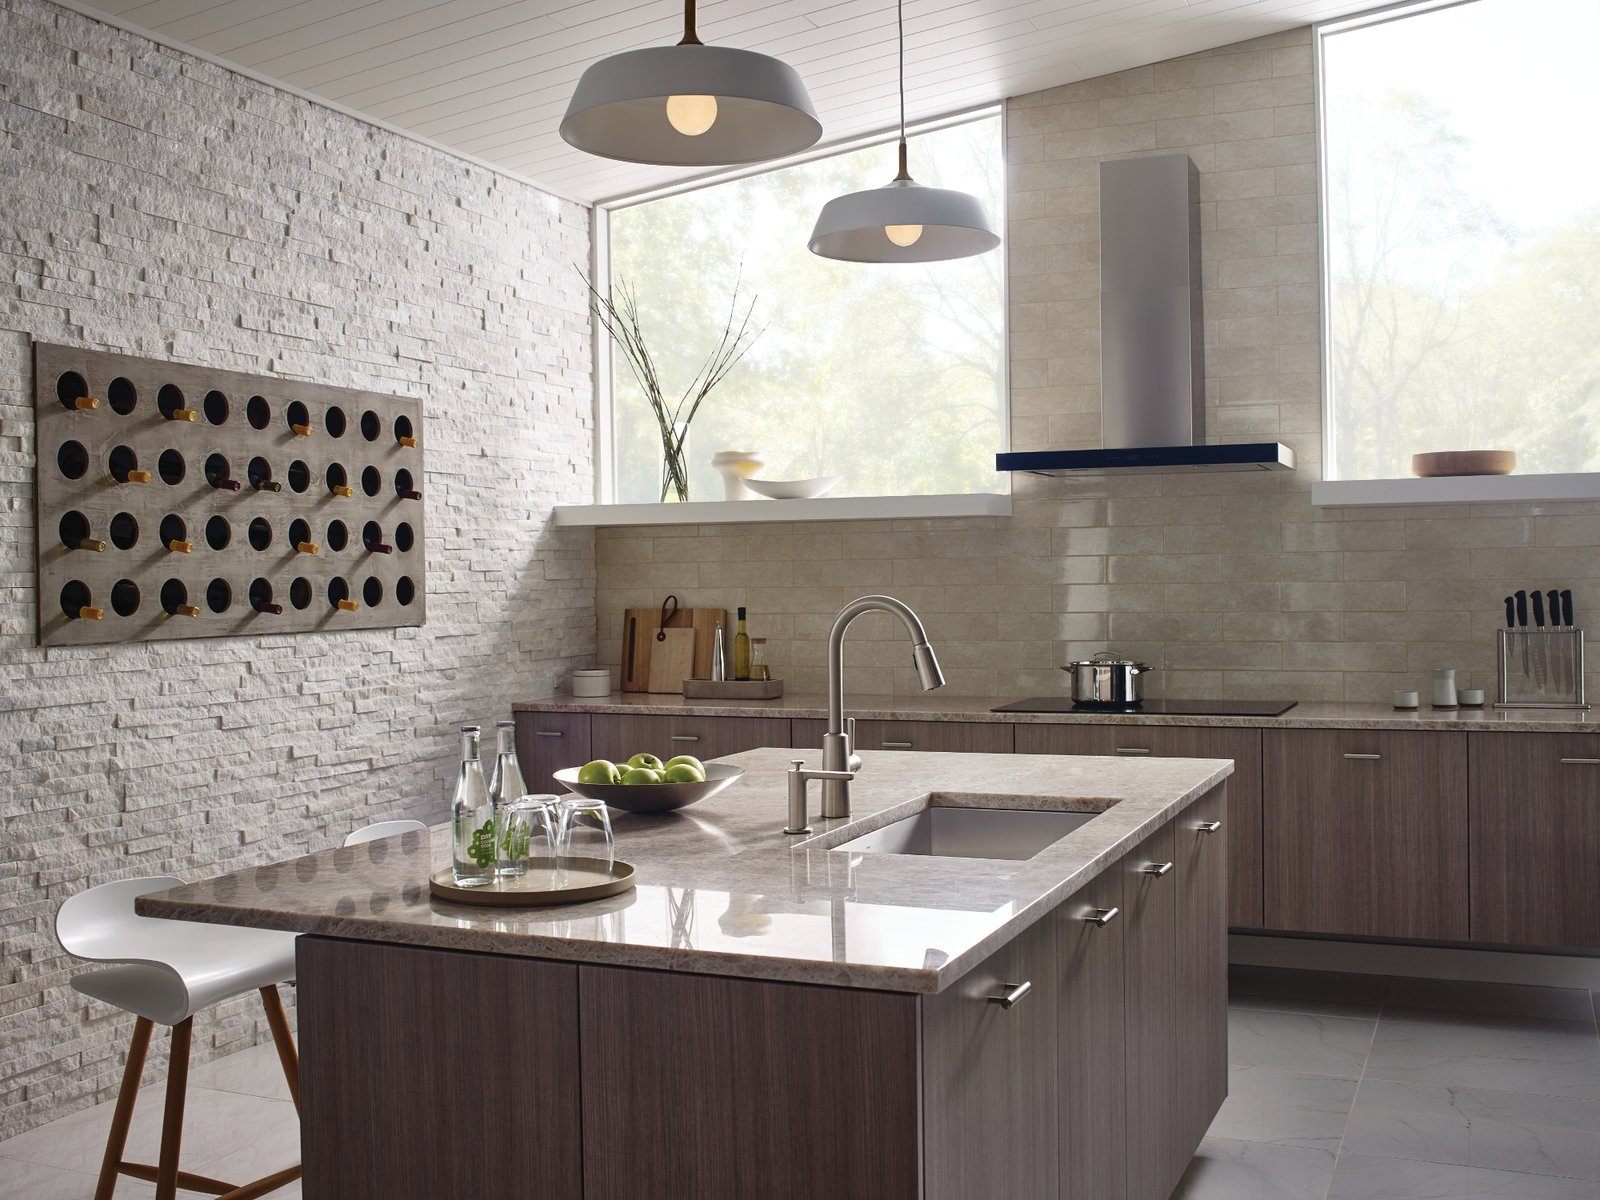 Kitchen, Range Hood, Cooktops, Ceramic Tile Backsplashe, and Wood Cabinet  Photo 3 of 8 in How to Add a Modern Twist to Any Kitchen Style